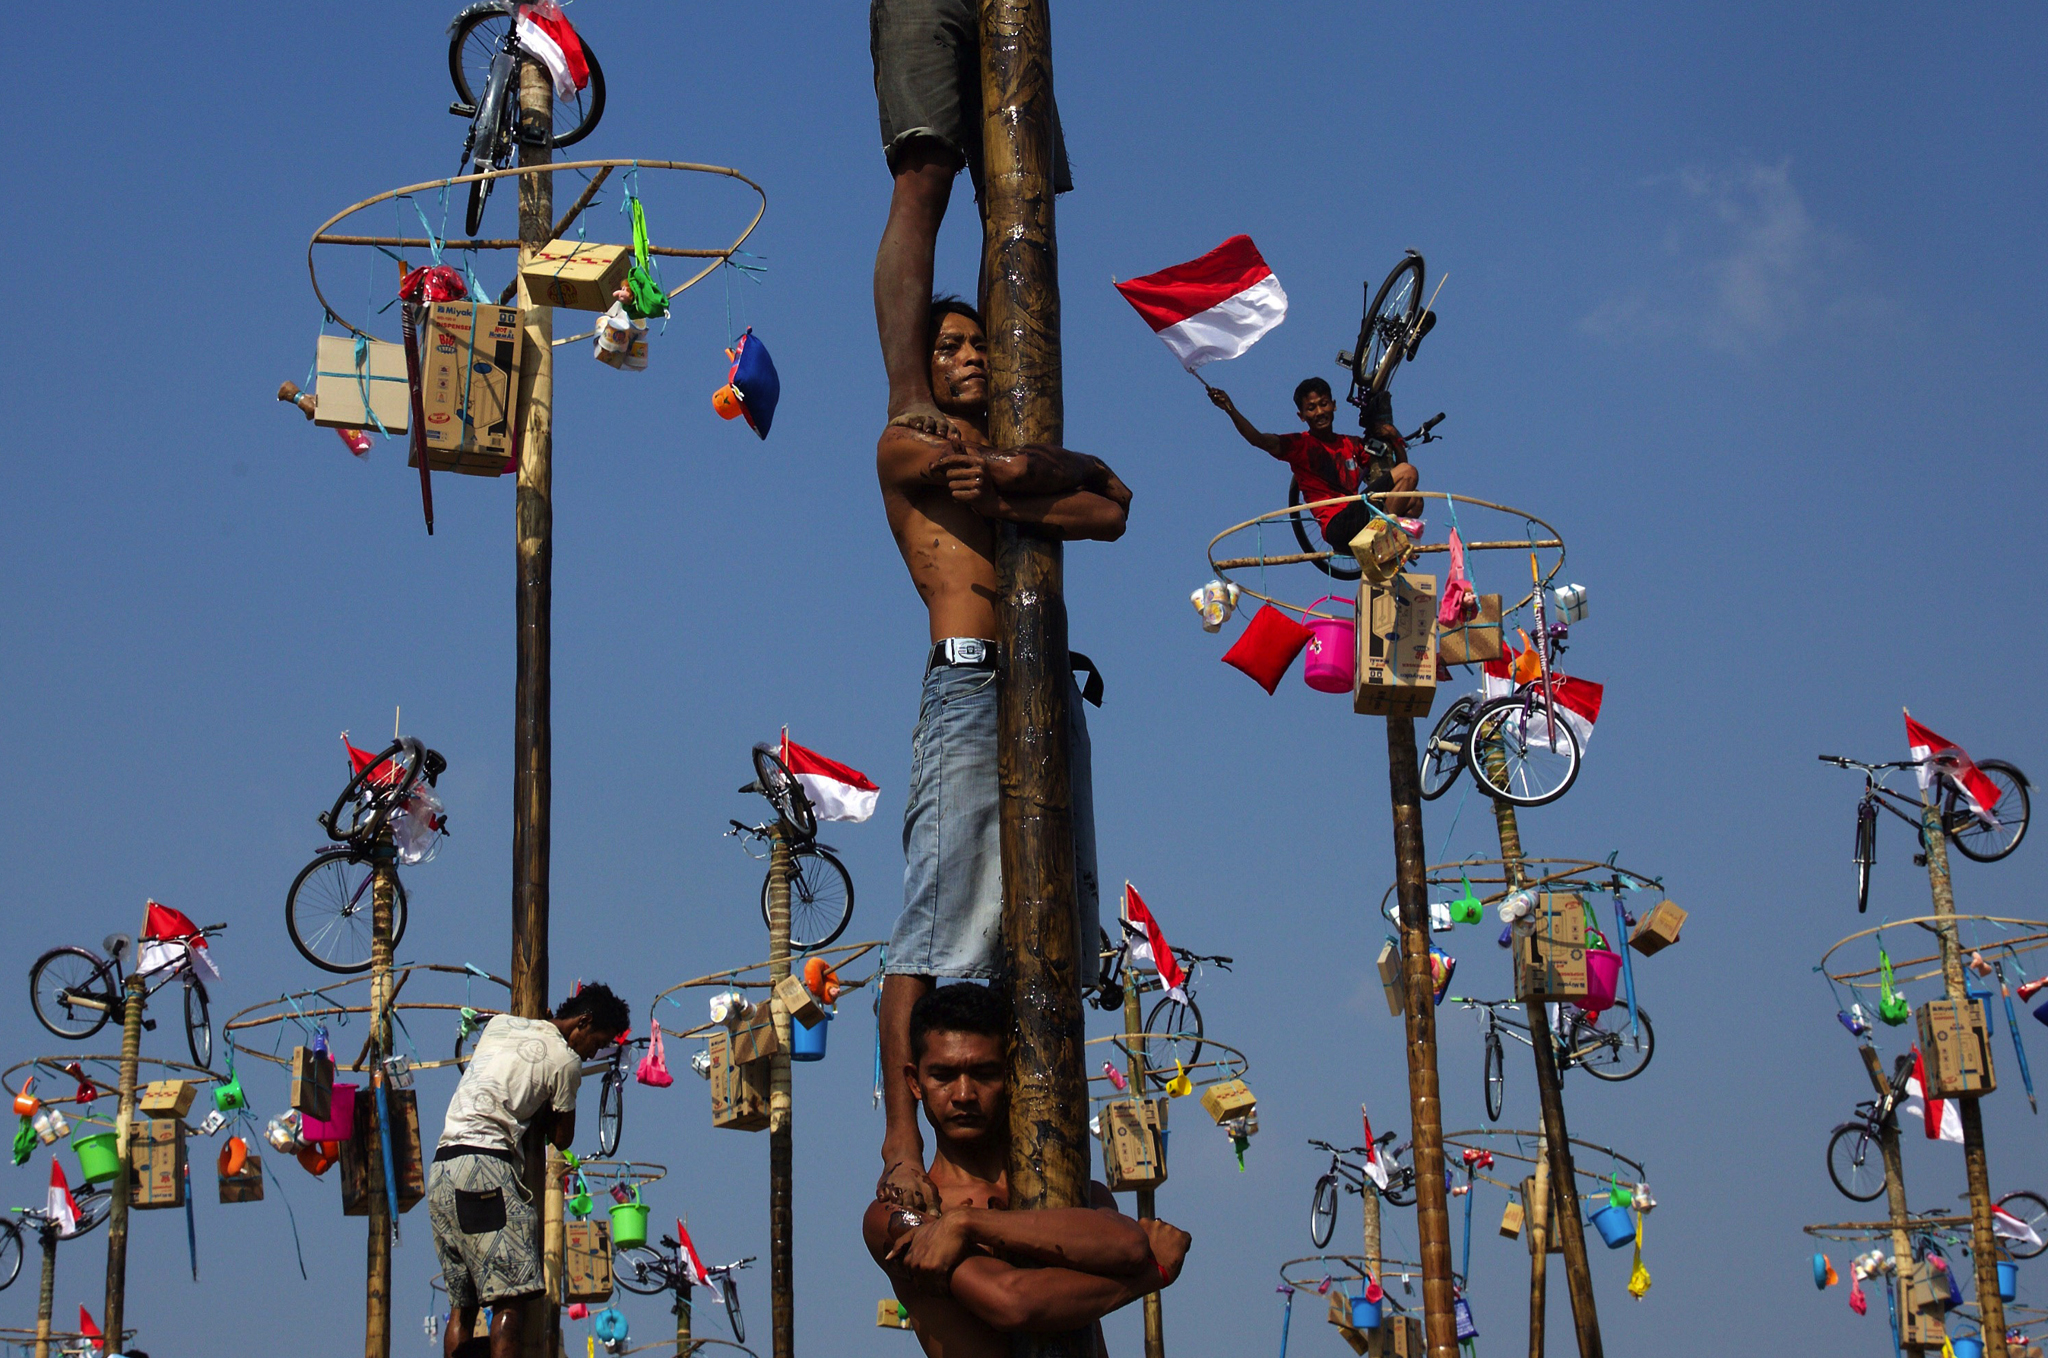 Indonesian men in teams of 4 try to climb to the top of a greased pole called a panjat pinang in order to get to the prizes tied to the top in Jakarta, Indonesia. Cities and villages across Indonesia celebrated the country's 70th anniversary of Independence with traditional games, and music, and flag raising ceremonies